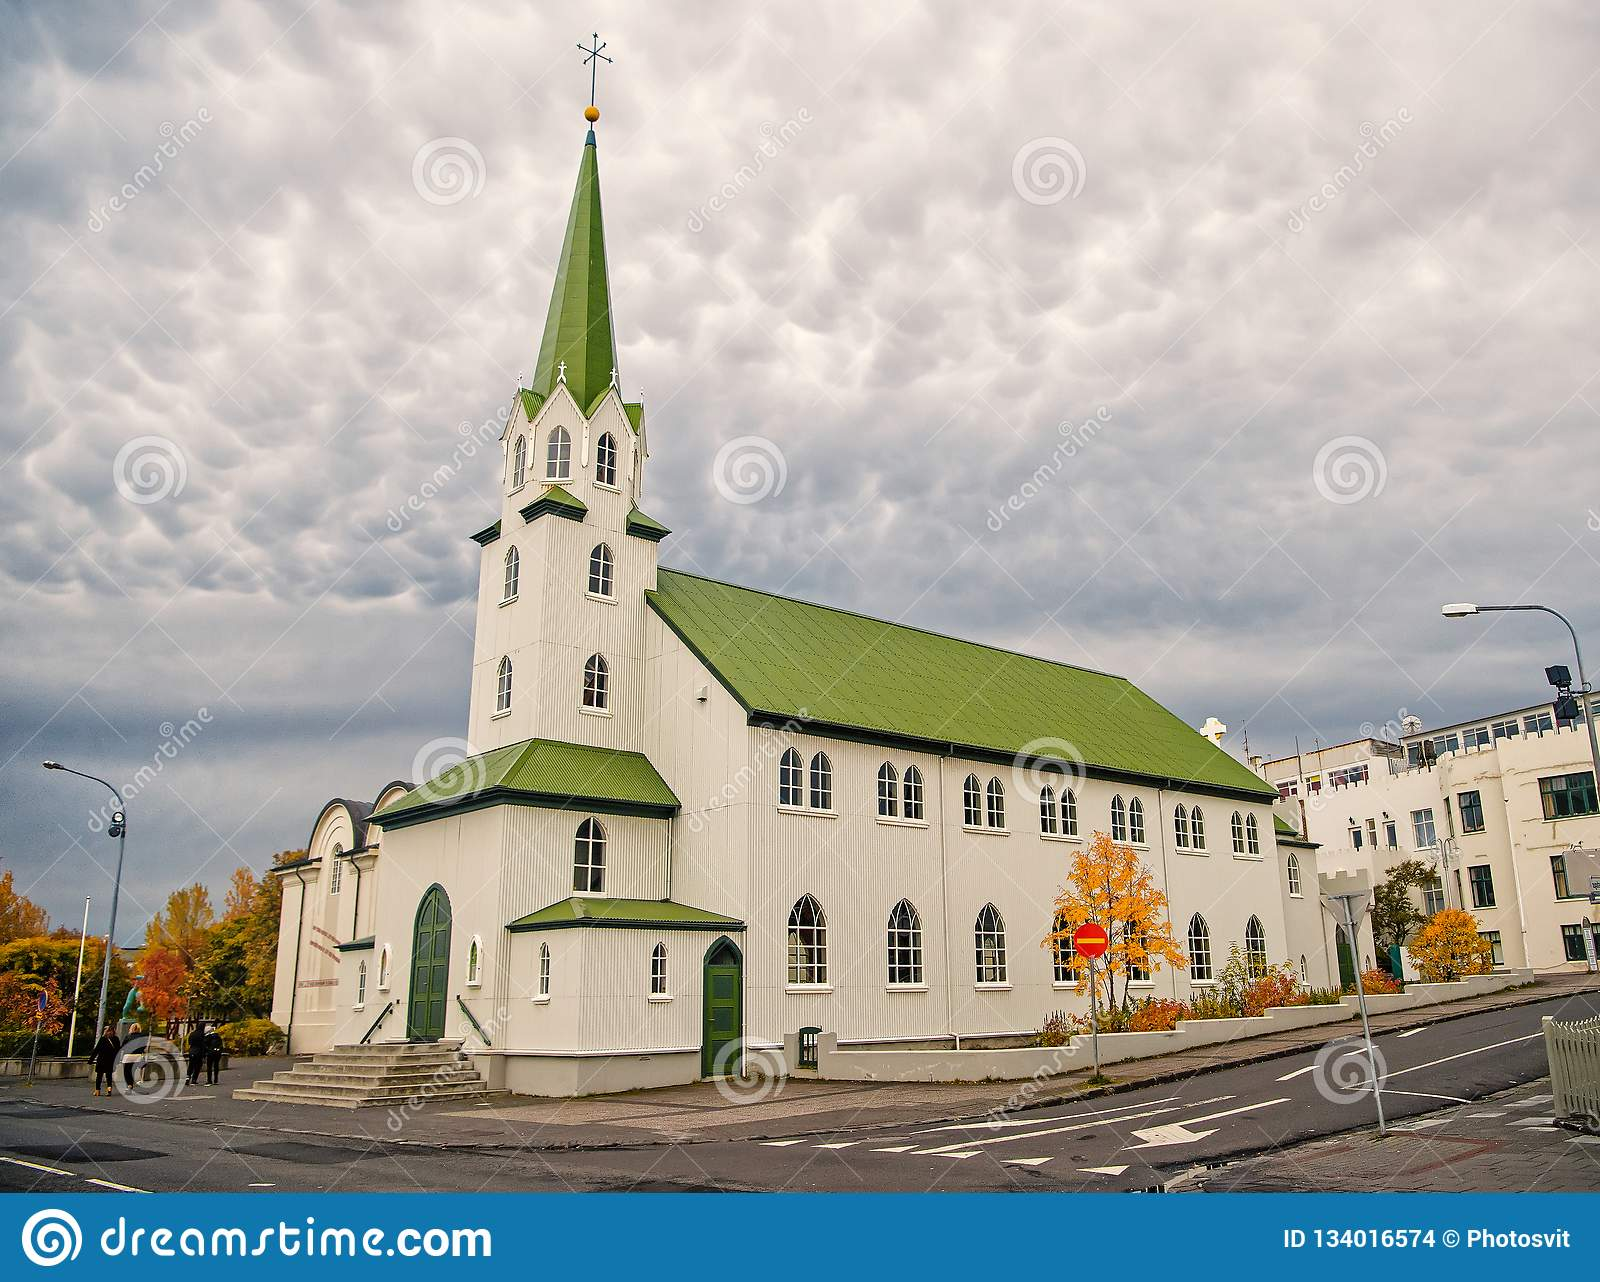 Church building on cloudy sky in Reykjavik, Iceland